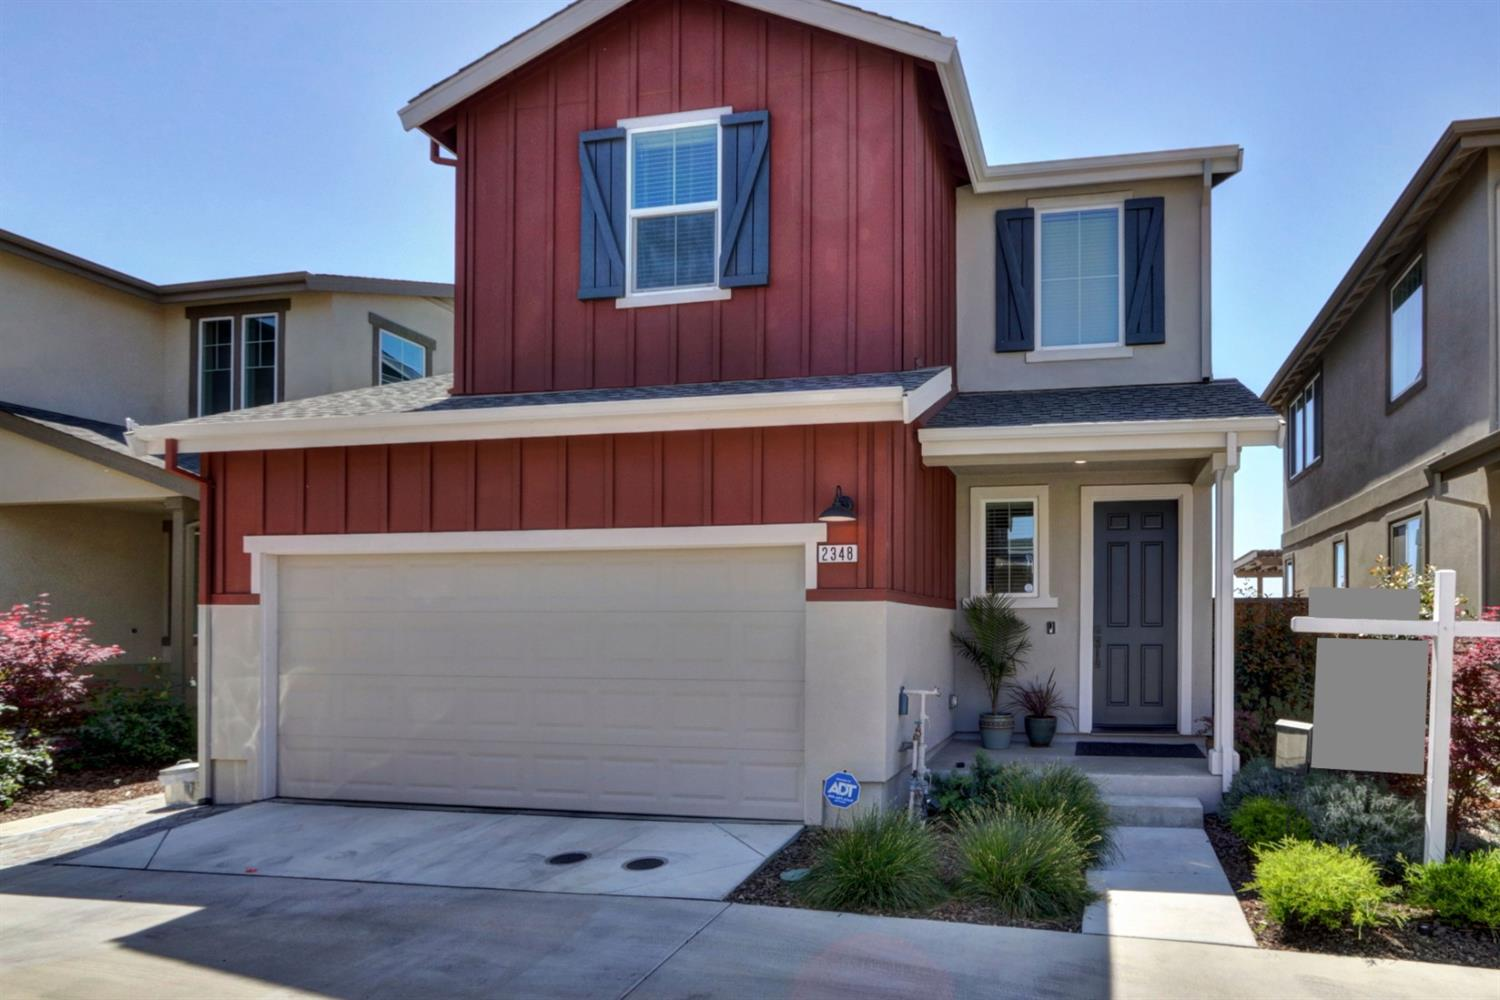 This beautiful 3 bedroom 3 bath home by award winning builder Signature Homes will not last. Absolutely gorgeous. Seller spared no expense to fully UPGRADE EVERYTHING when he purchased the home including fabulous kitchen cabinets.  Fresh paint throughout in beautiful neutral colors -- not just boring white! Stunning waterproof laminate everywhere except bedrooms.  GIANT kitchen island, gorgeous upgraded carpet and pad, stainless steel appliances, and energy saving smart vents. You'll enjoy ALL CUSTOM BLINDS. Your ADT is fully set up and ready to assume. Laundry is conveniently upstairs!  How about a Whole House Fan to keep you cool all summer long?  The entire house is wired for fiber internet! Pavers in the back have a 25 year warranty! Re